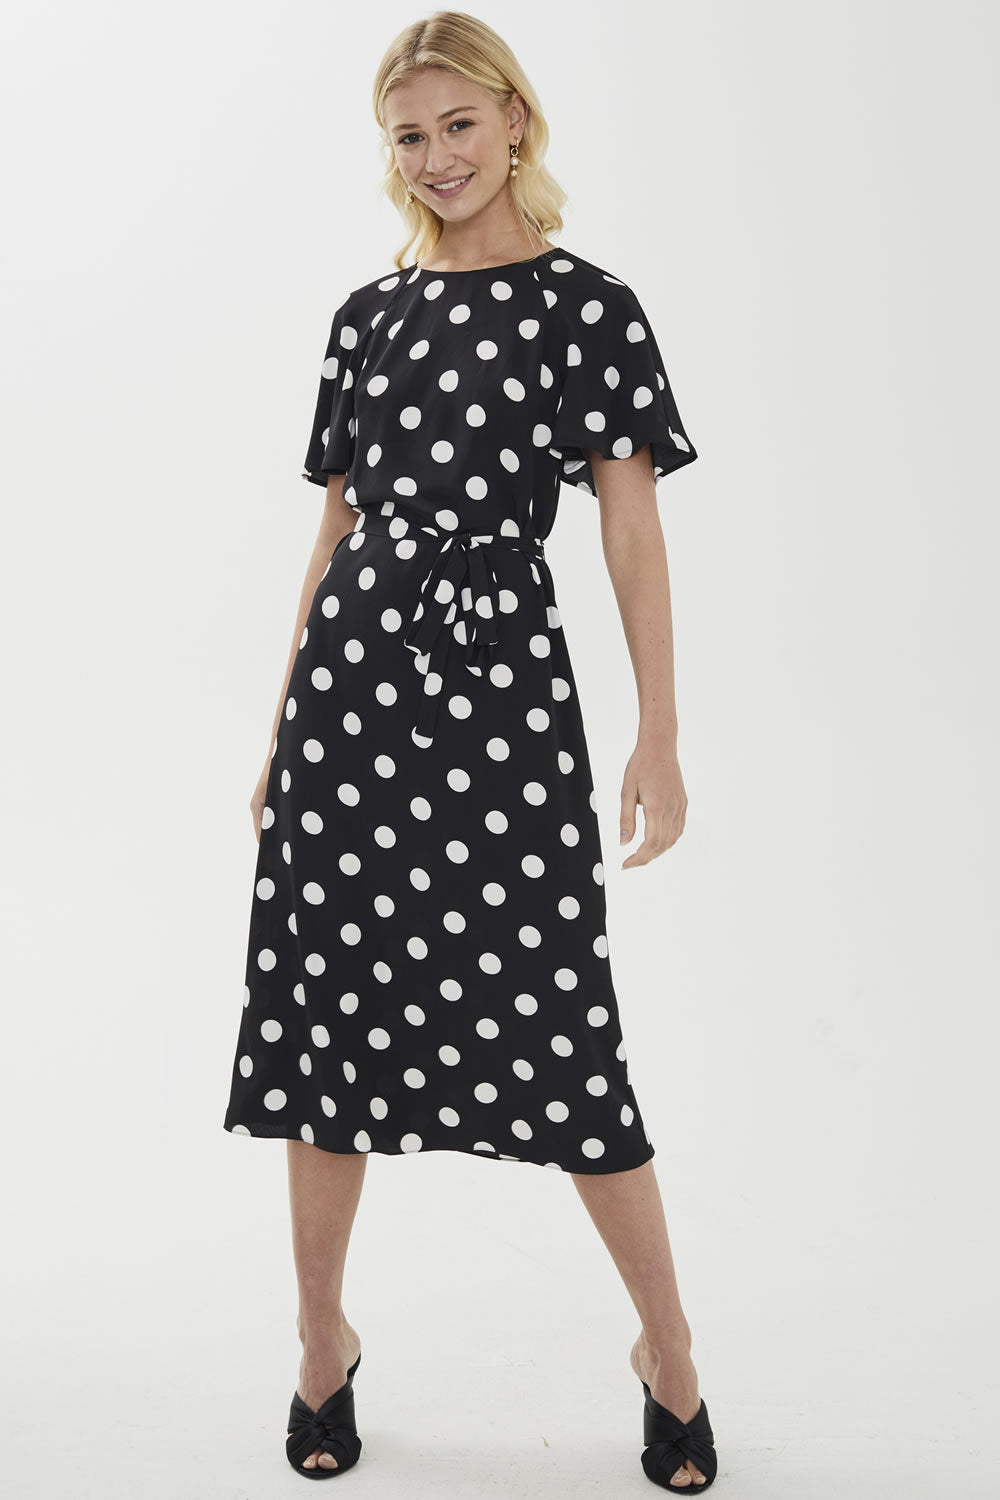 Cooper St Polka Dot Flutter Sleeve Midi Dress